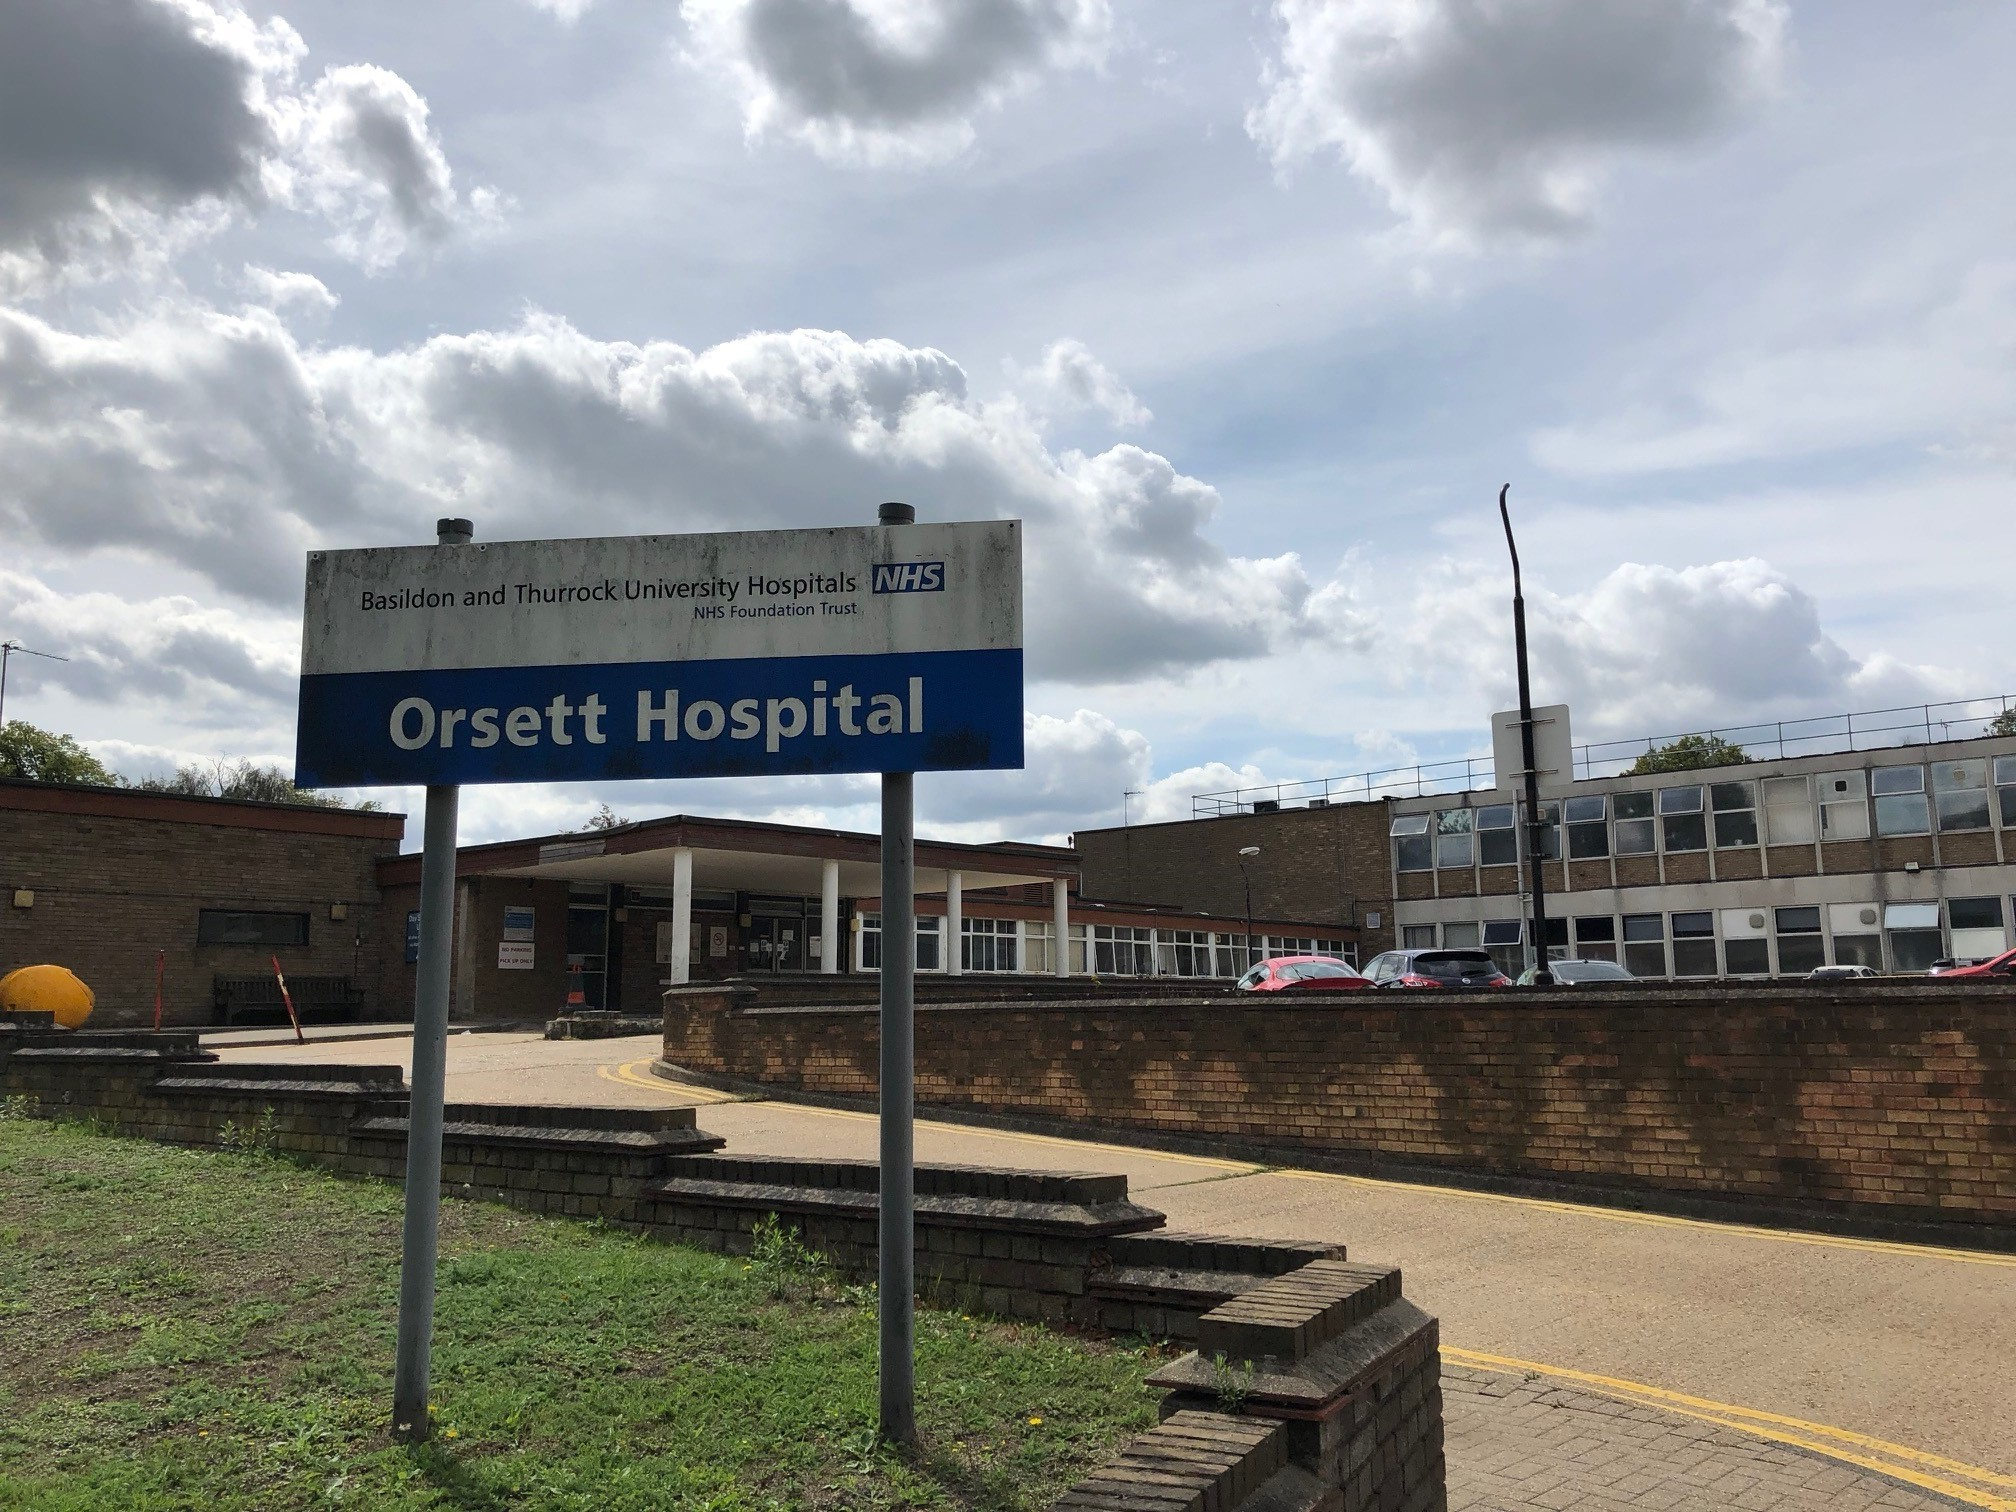 At risk - Orsett Hospital  could be closed under the plans